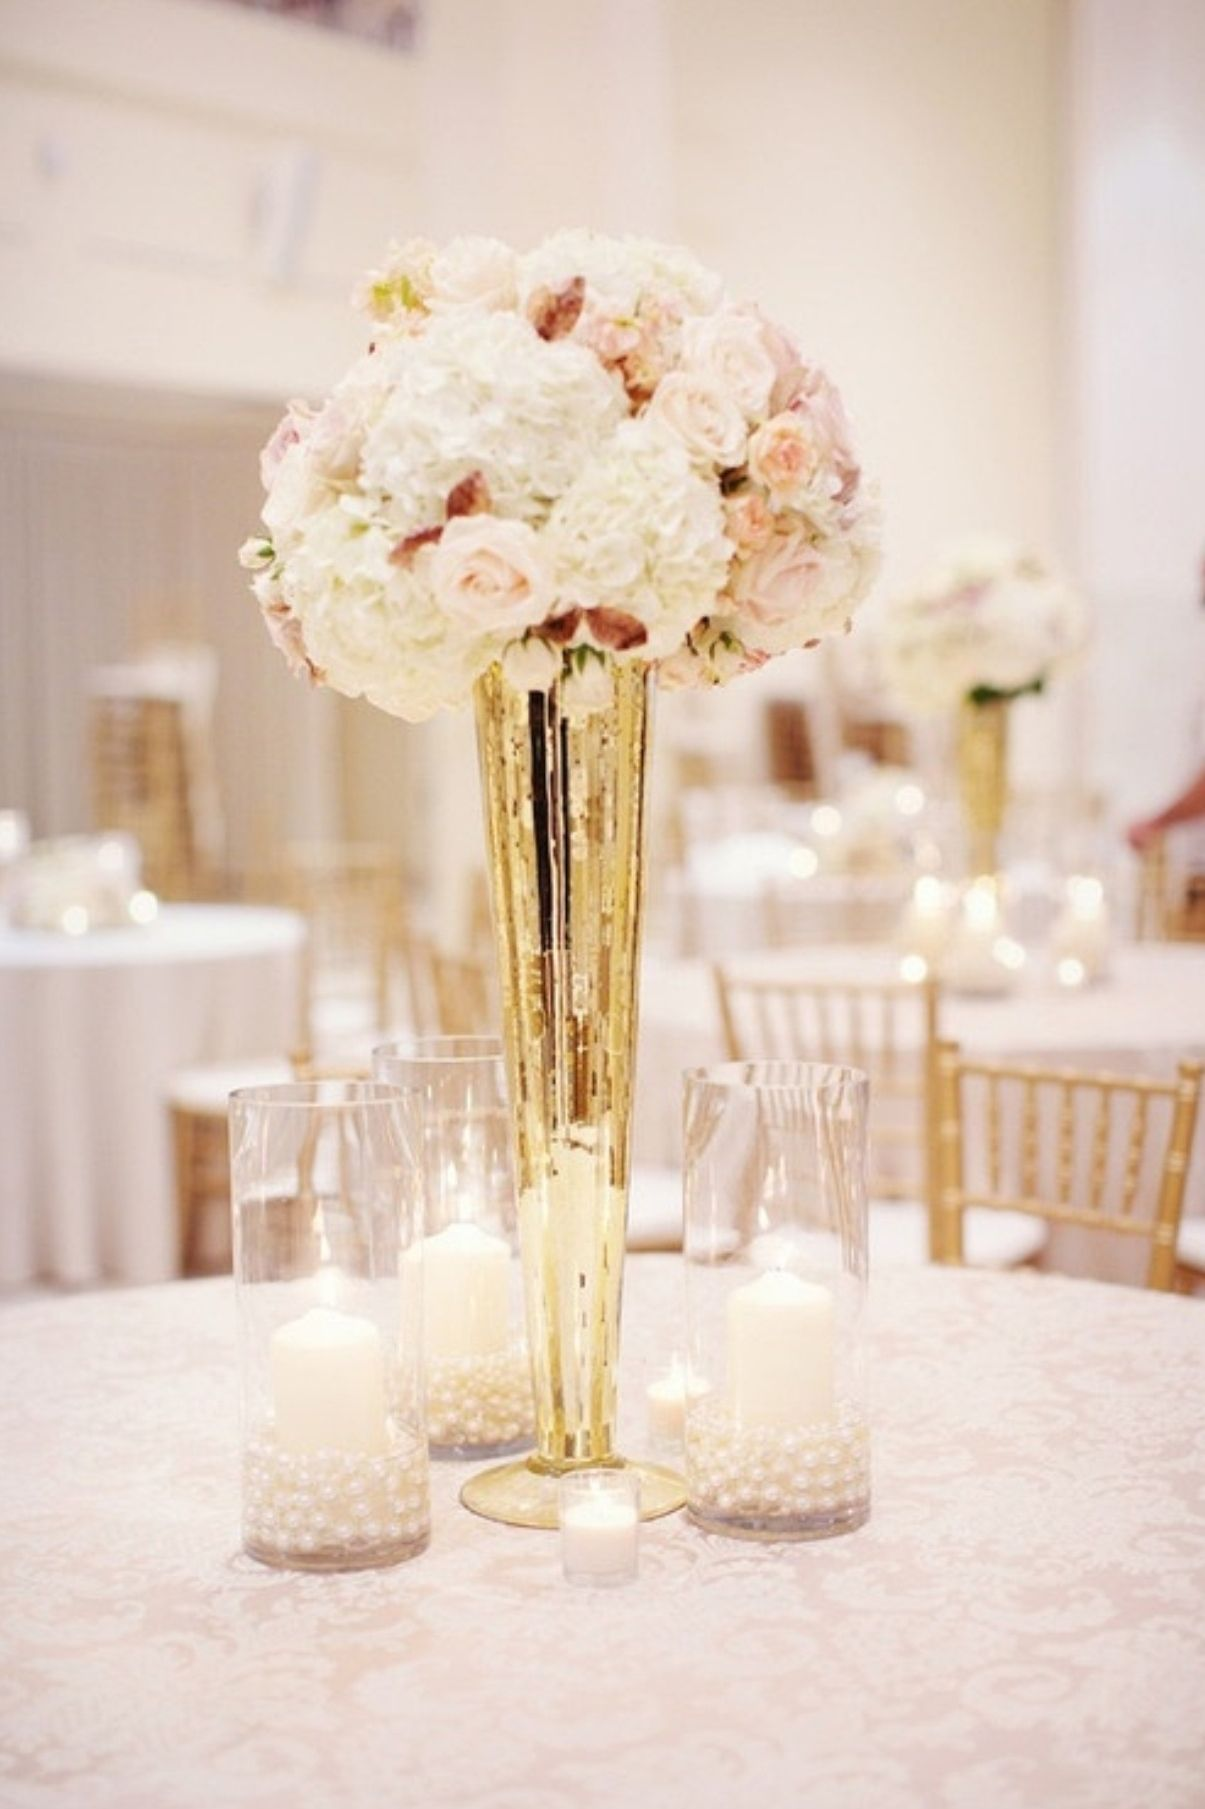 Tall Gold Mercury Glass Vases Tall Vase Wedding Centerpieces Wedding Centerpieces Beige Wedding